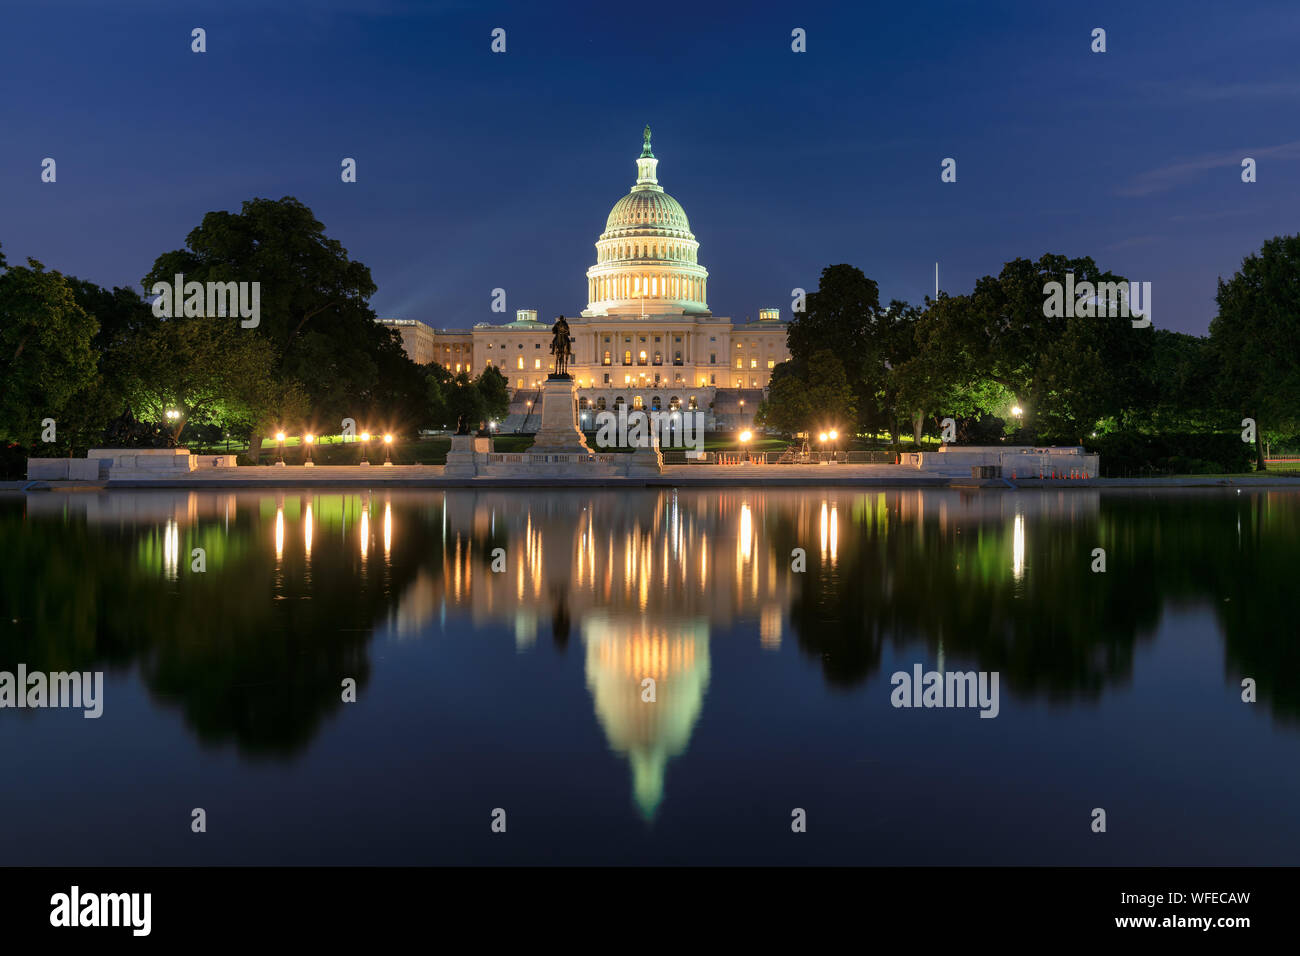 United States Capitol Building bei Nacht Stockfoto